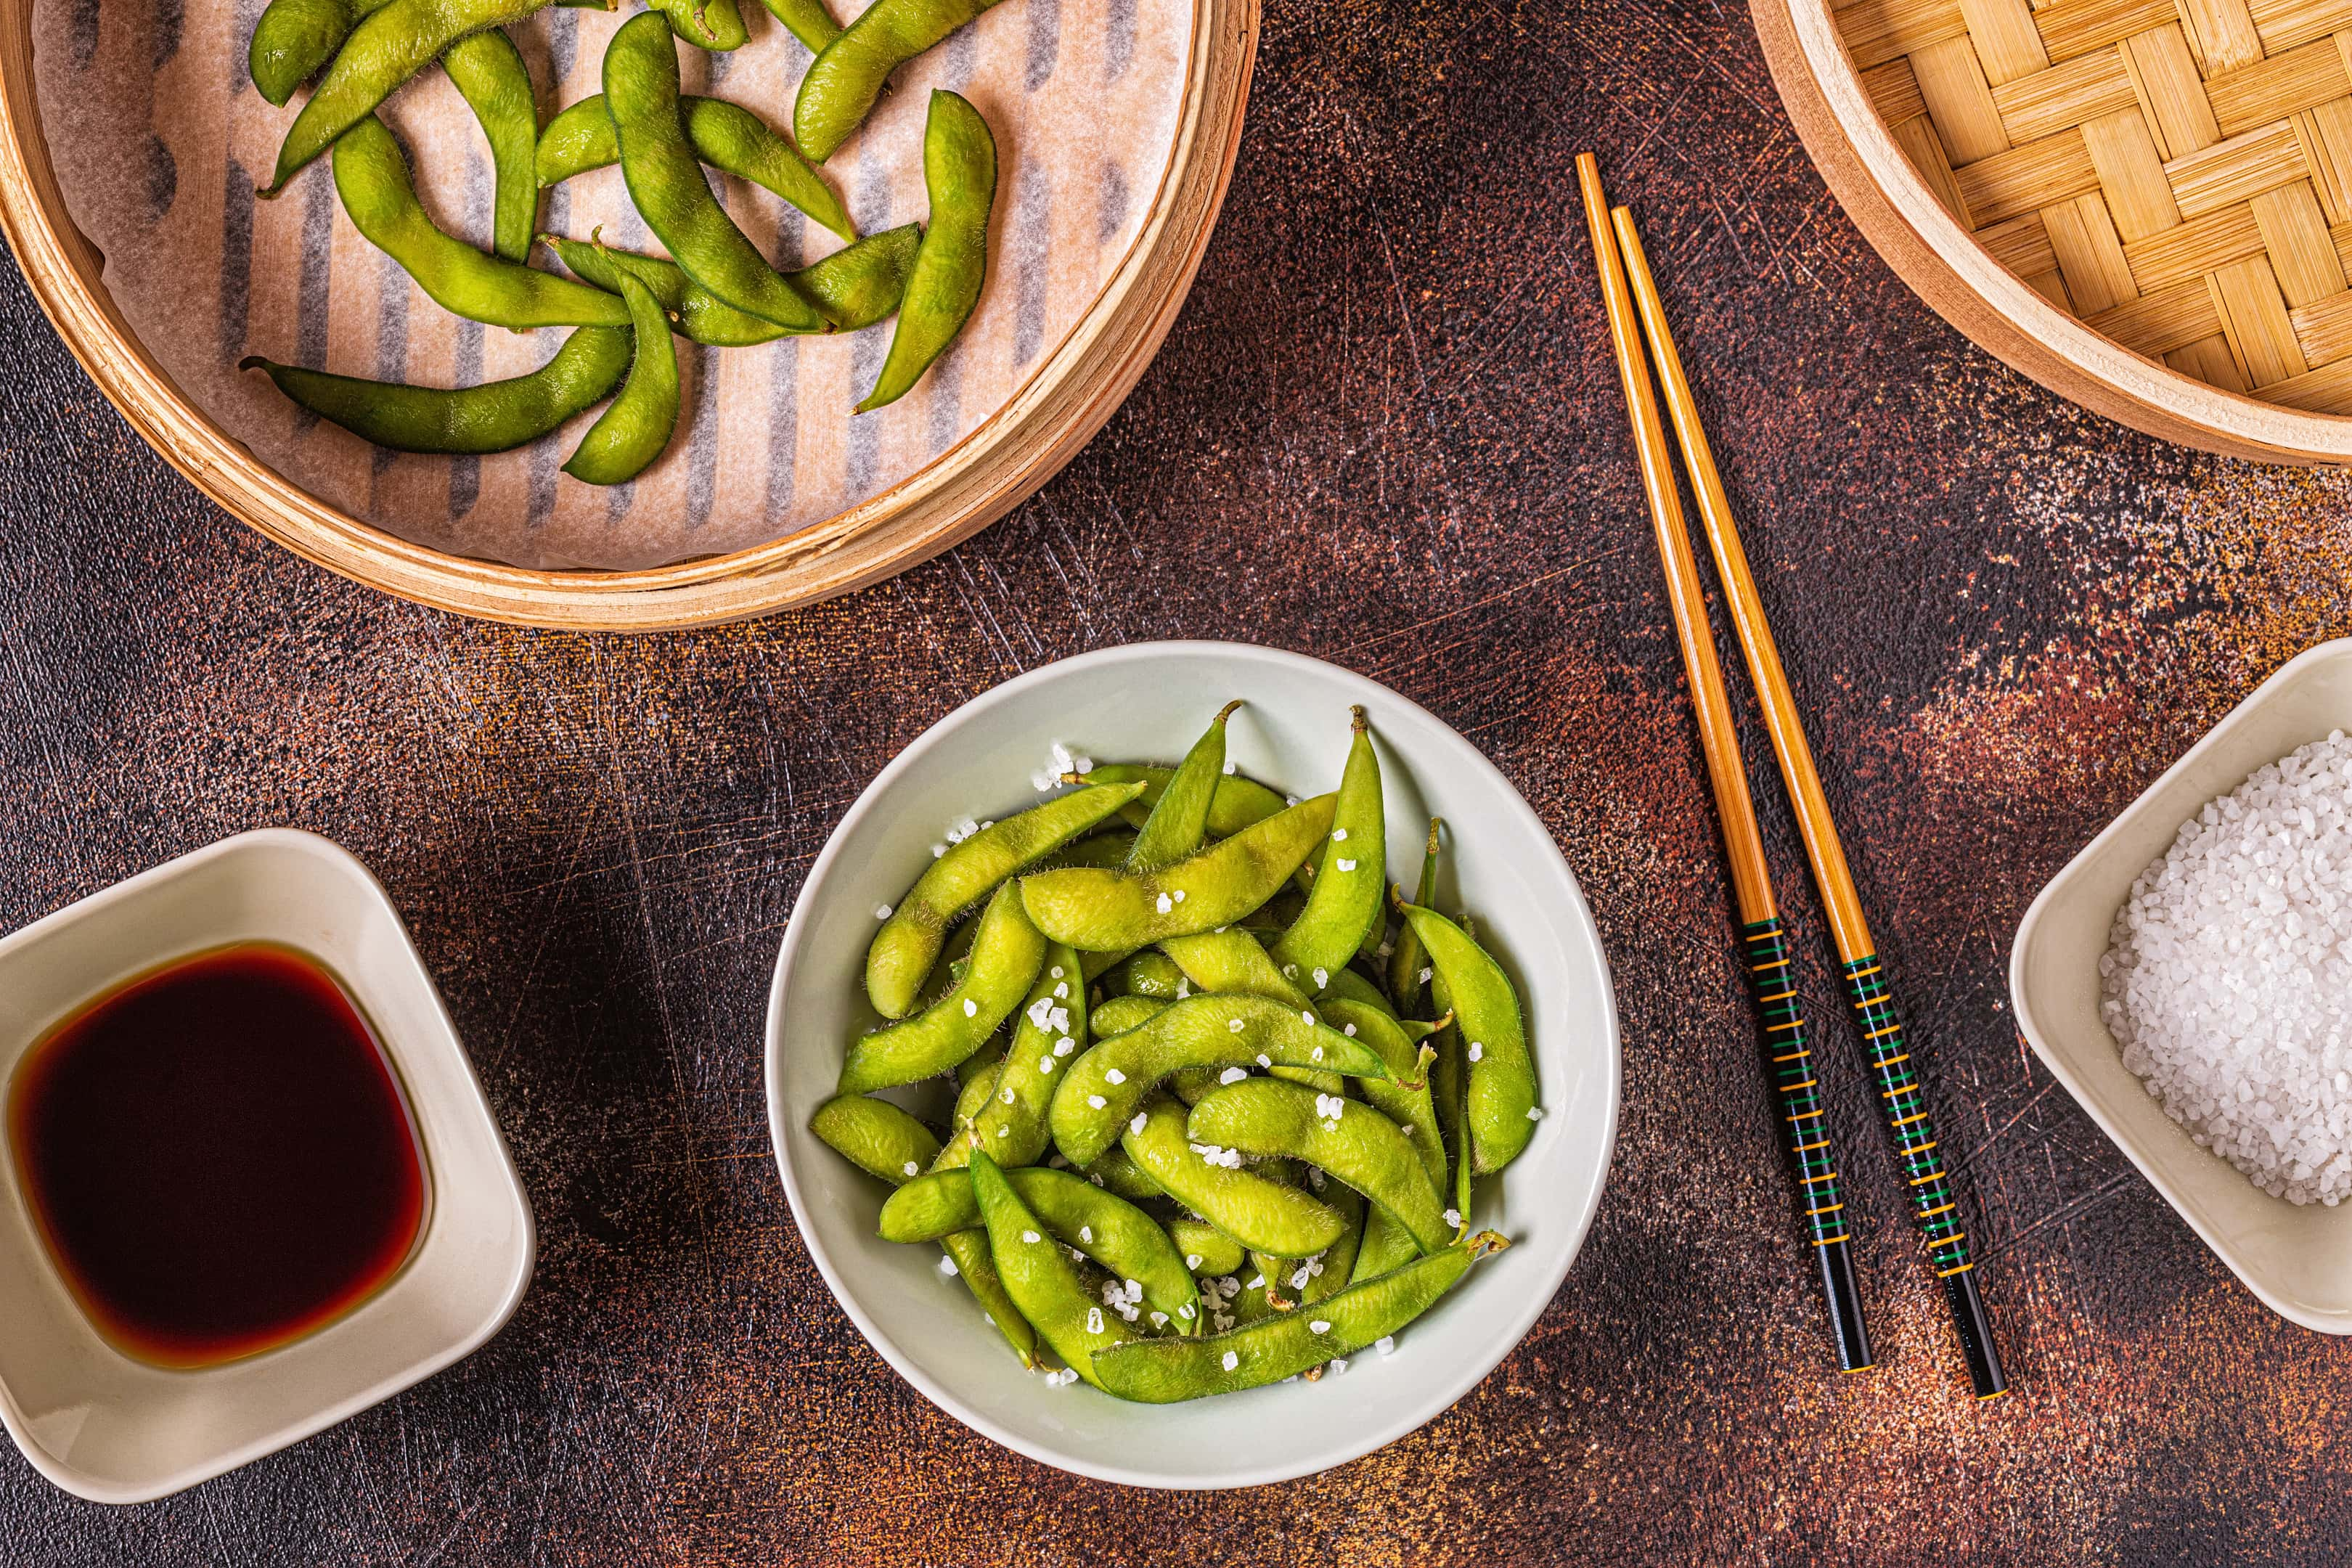 Cooked green edamame with soy sauce